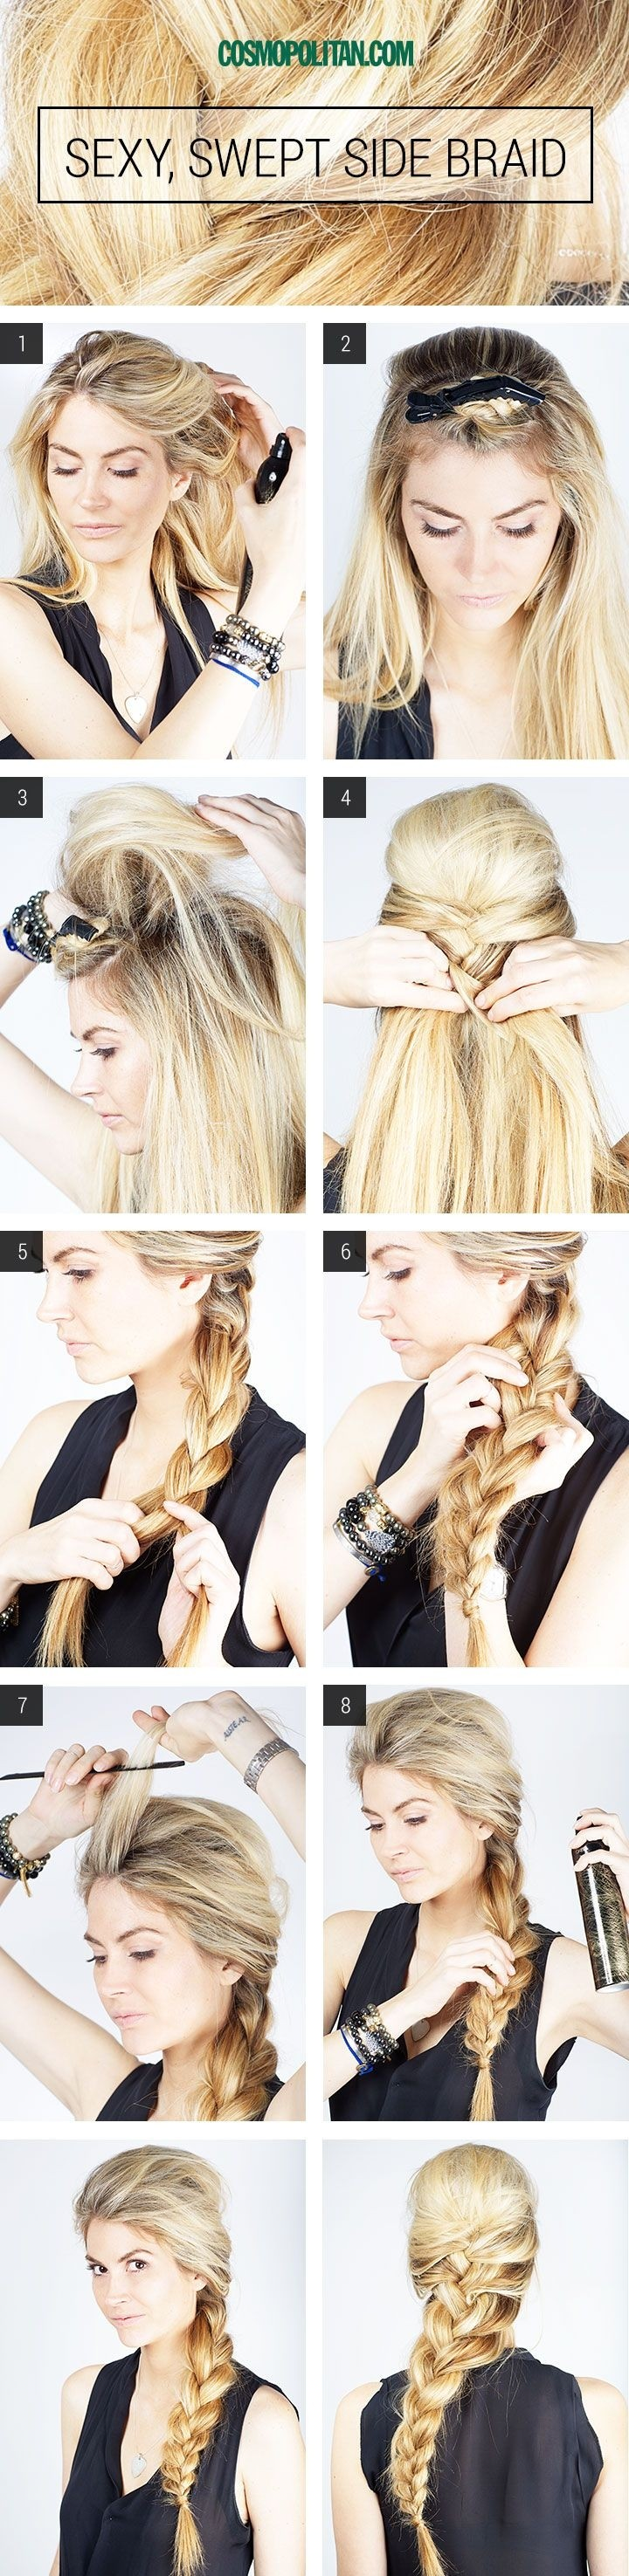 Marvelous 10 French Braids Hairstyles Tutorials Everyday Hair Styles Hairstyle Inspiration Daily Dogsangcom